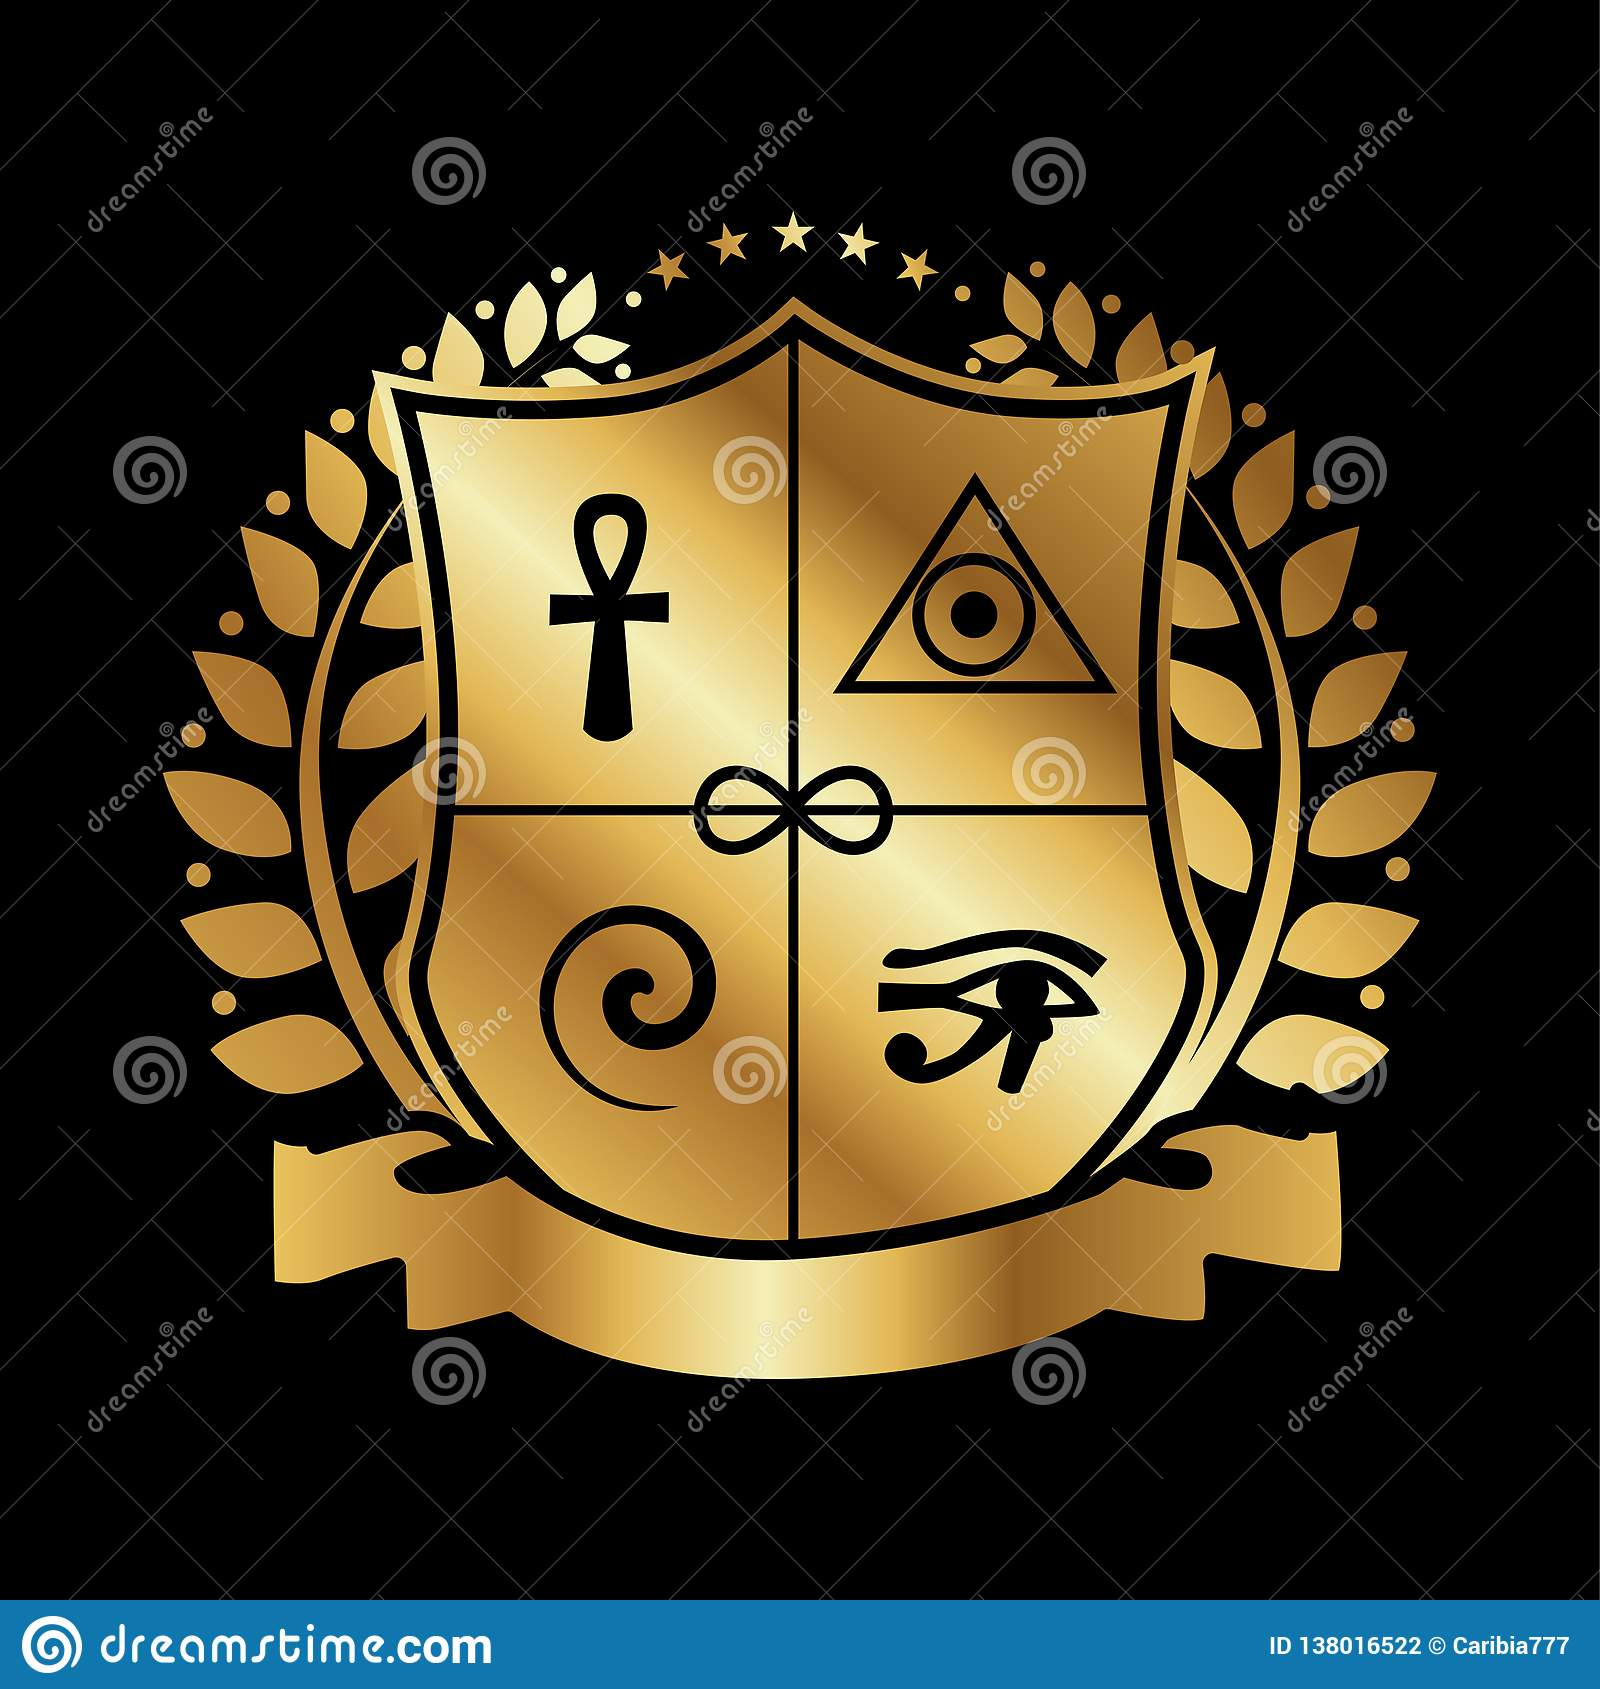 illustration-logo-style-material-design-theme-mysticism-esotericism-illustration-coat-arms-style-138016522[2]